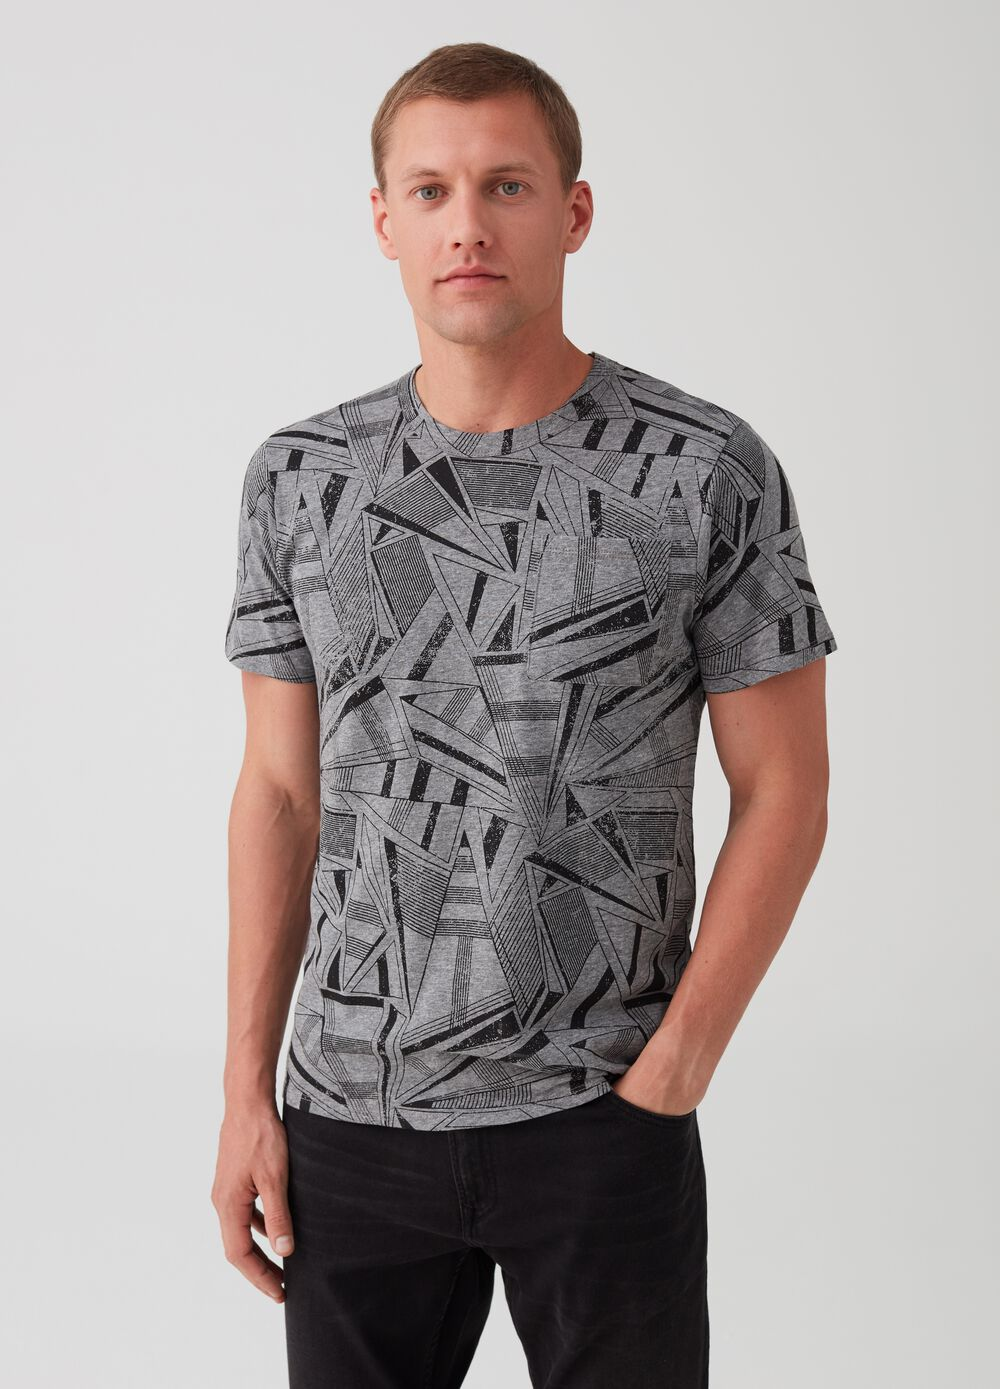 Printed cotton stretch T-shirt